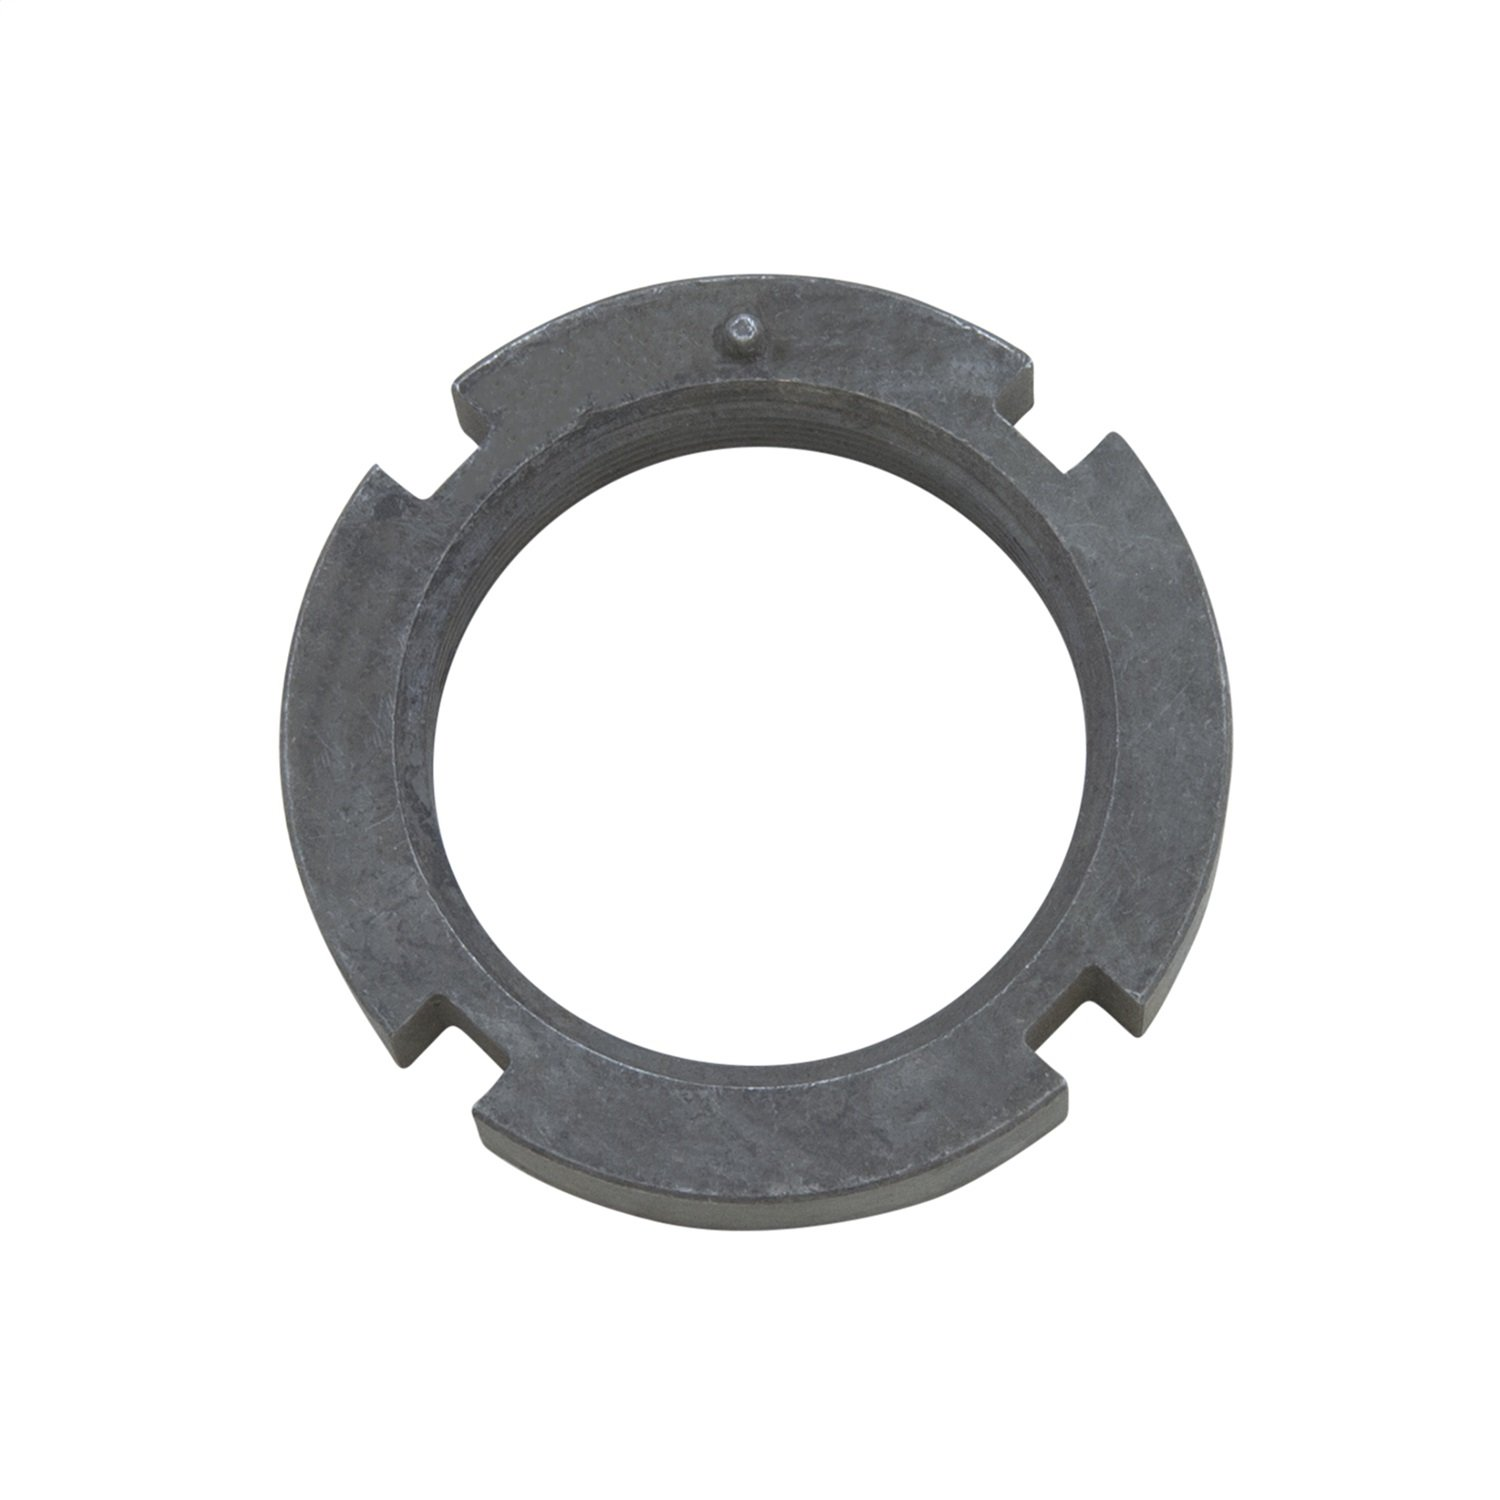 Yukon (YSPSP-032) Spindle Nut Retainer and Pin Assembly for Dana 28/AMC Model 35 IFS Differential